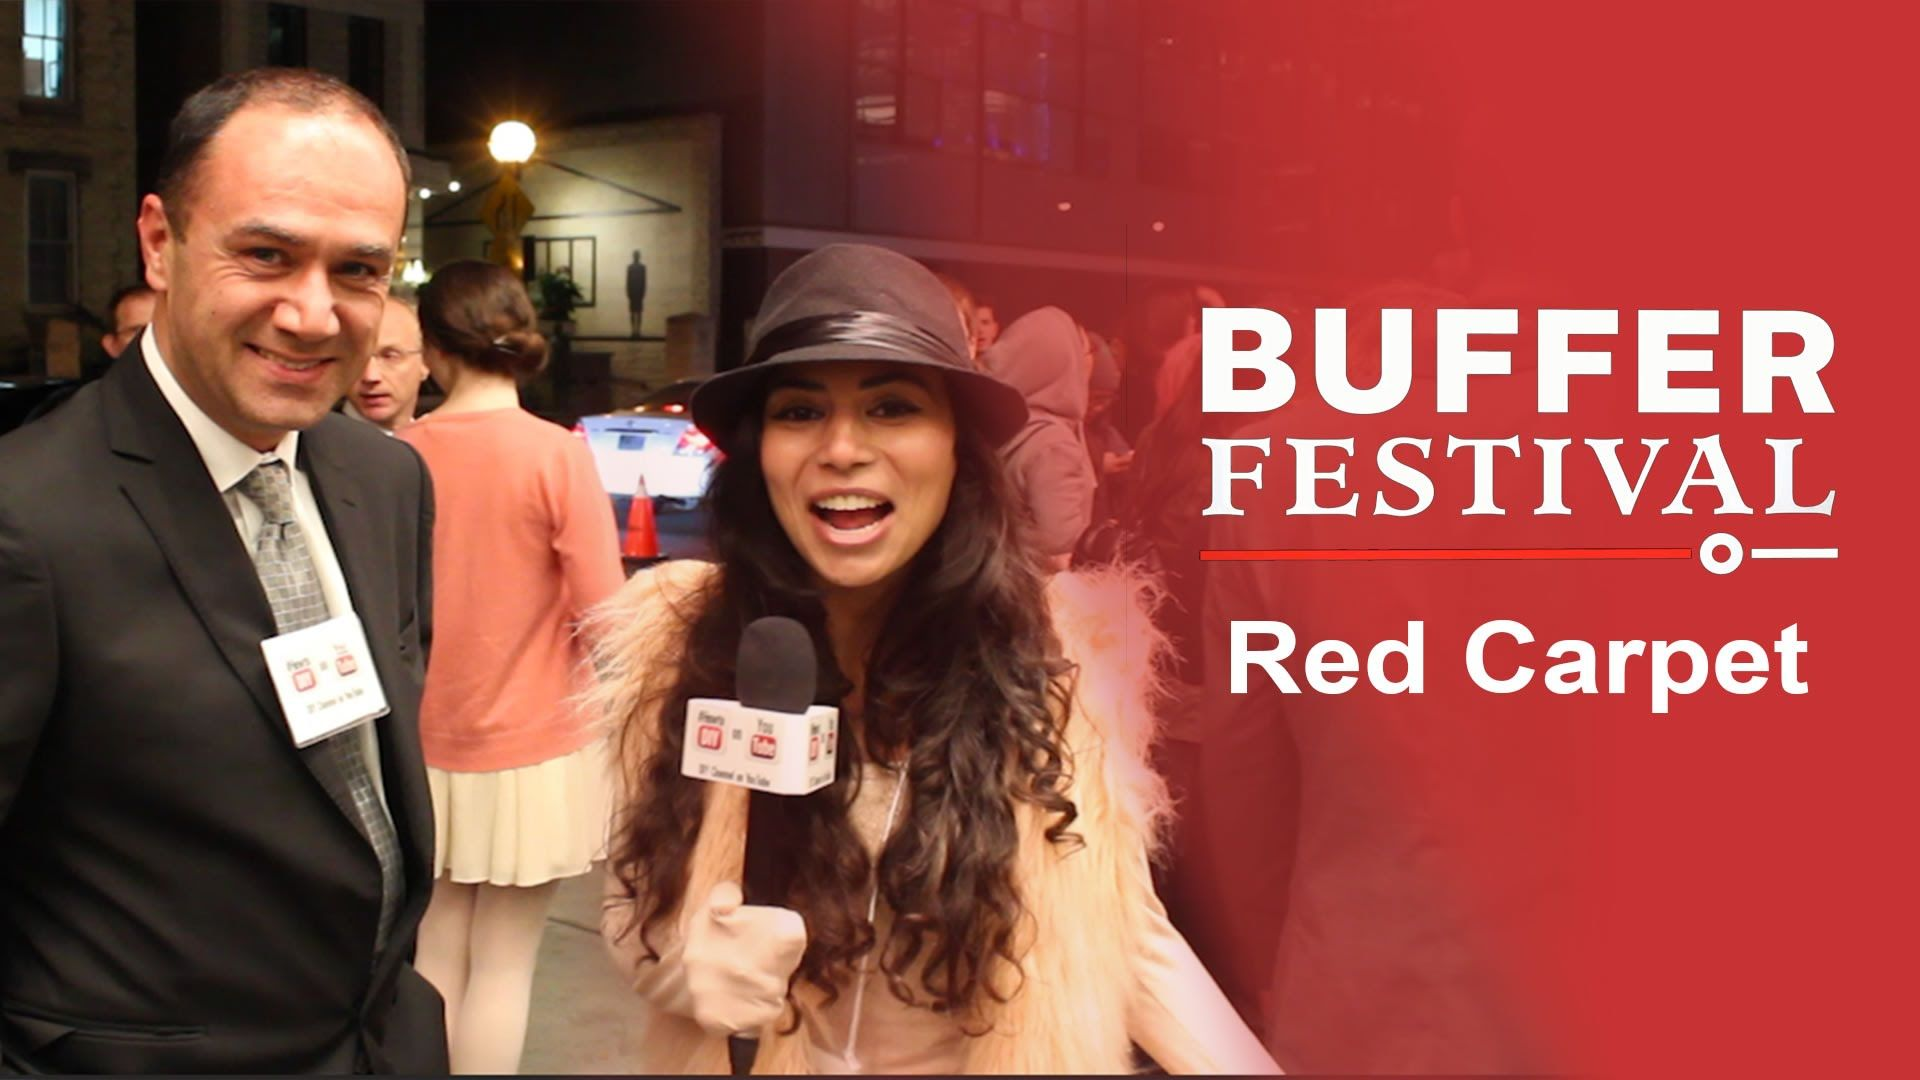 Buffer Festival 2015 Red Carpet Gala Highlights | An Event for YouTubers